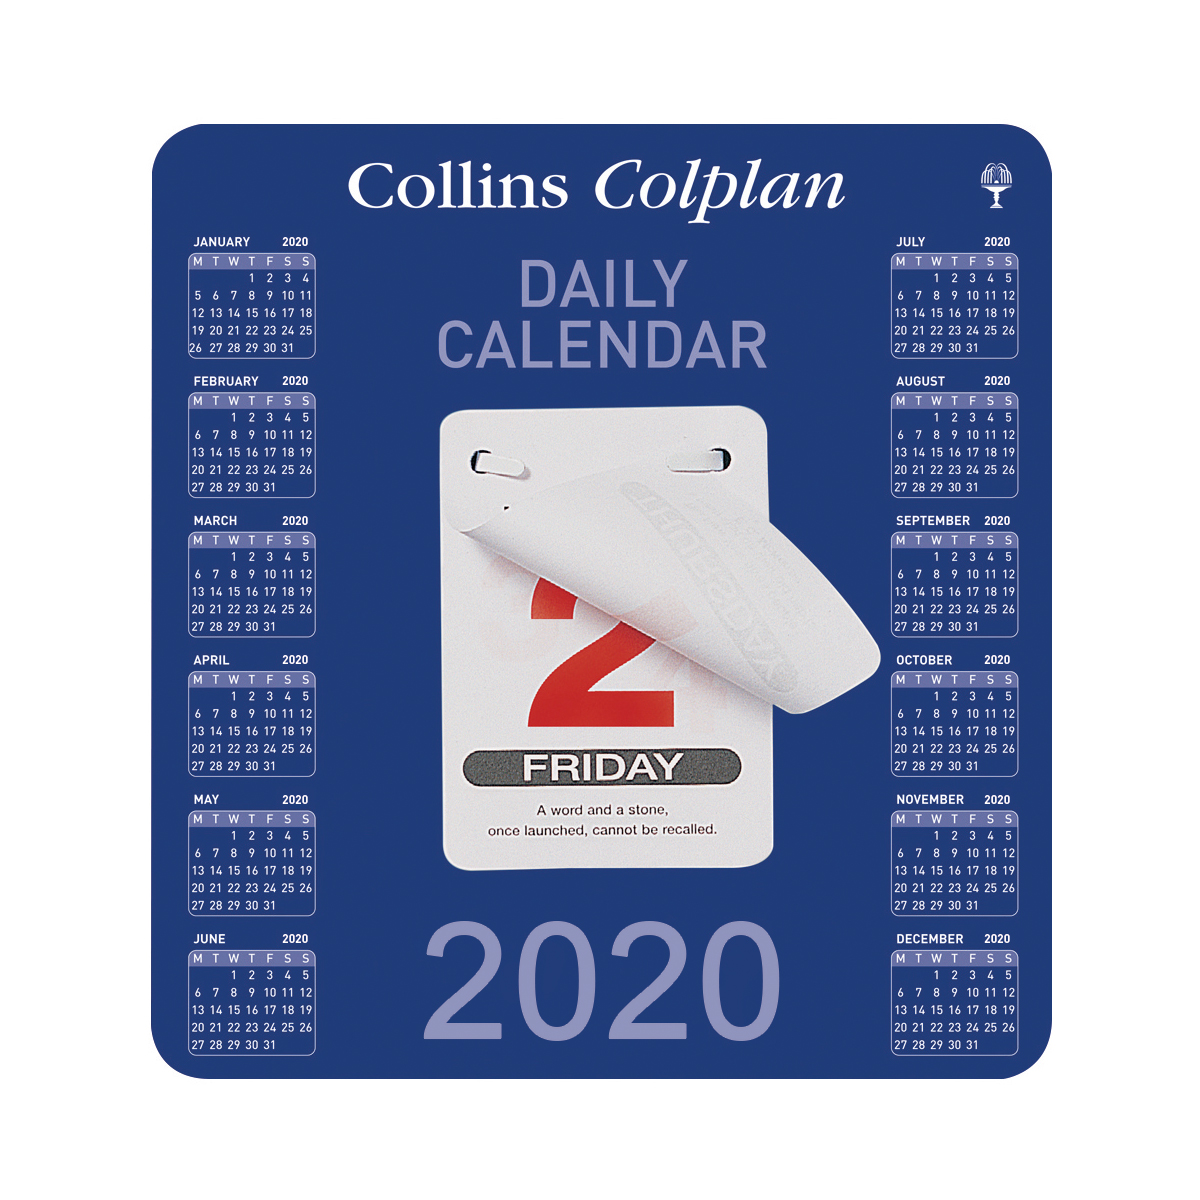 Calendars Collins Colplan 2020 Daily Block Calendar 12 Month Daily Tear-off 165x175mm White/Blue Ref CDBC 2020